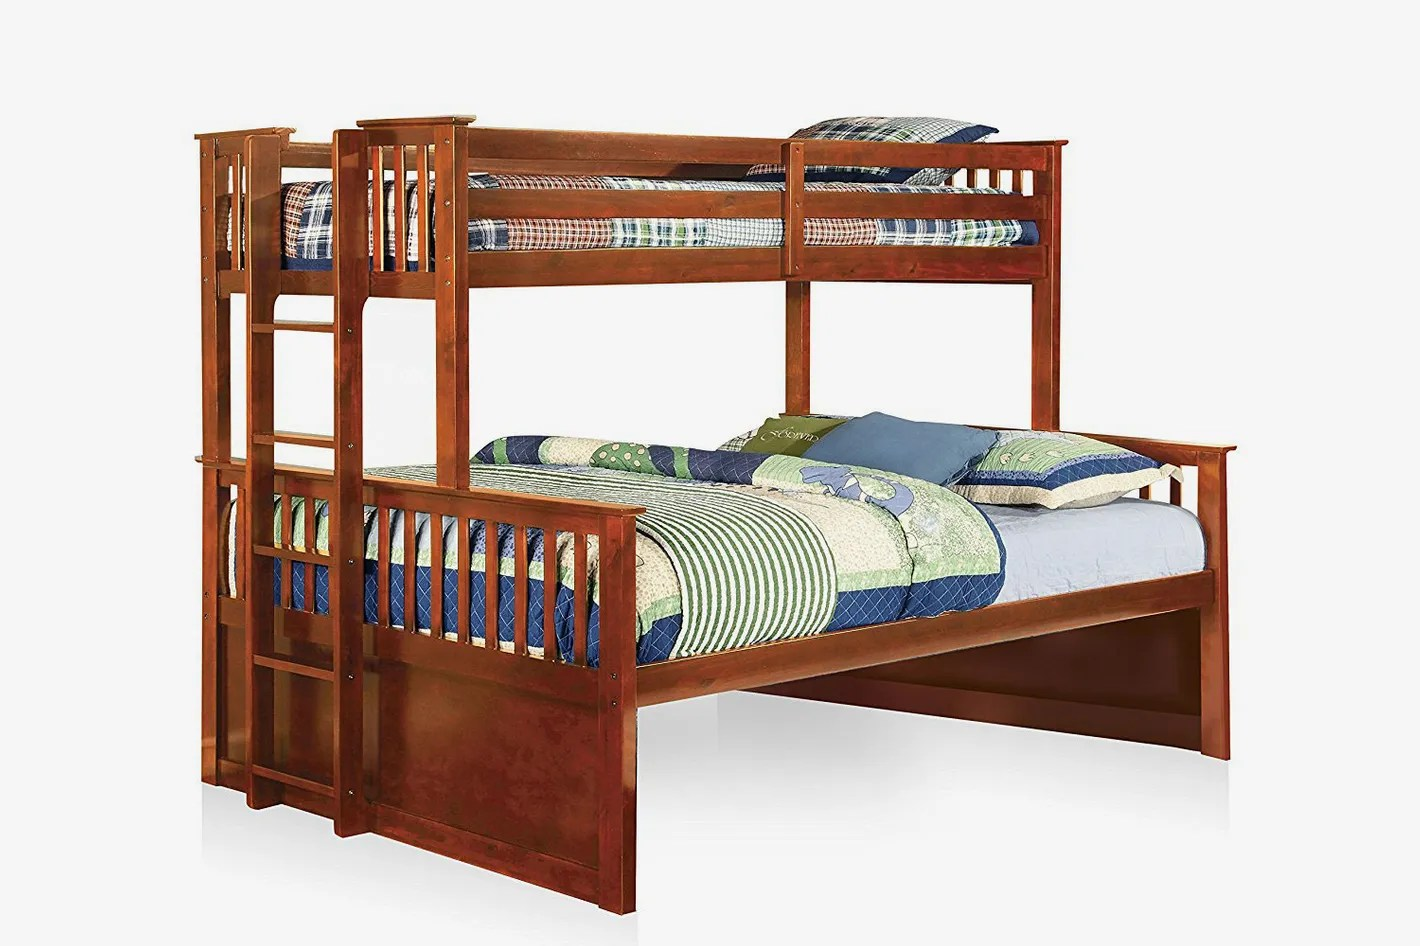 Enthralling Adults Furniture America Pammy Twin Over Queen Bunk Bed Bunk Beds On Amazon 2018 Wood Bunk Beds Canada Wood Bunk Beds baby Wood Bunk Beds